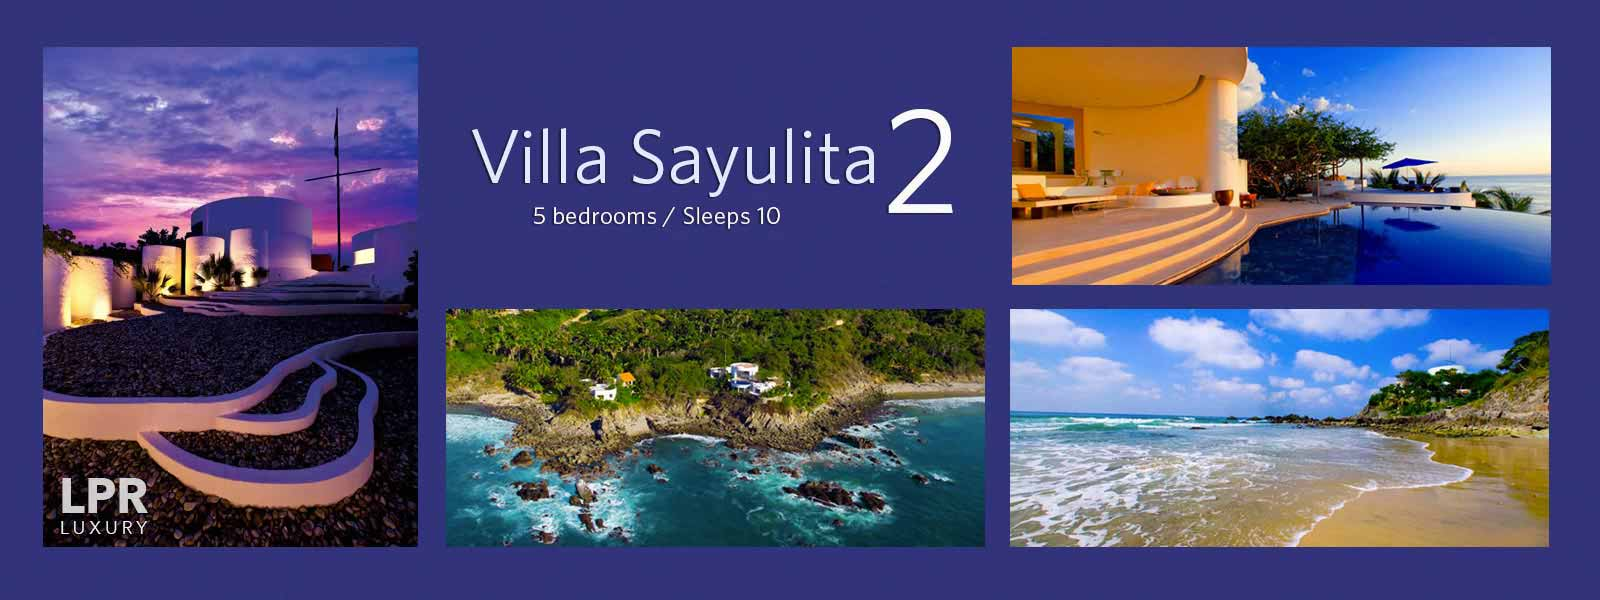 Villa Sayulita 2 - Luxury Punta de Mita Rentals - Vacation Villas and Estates